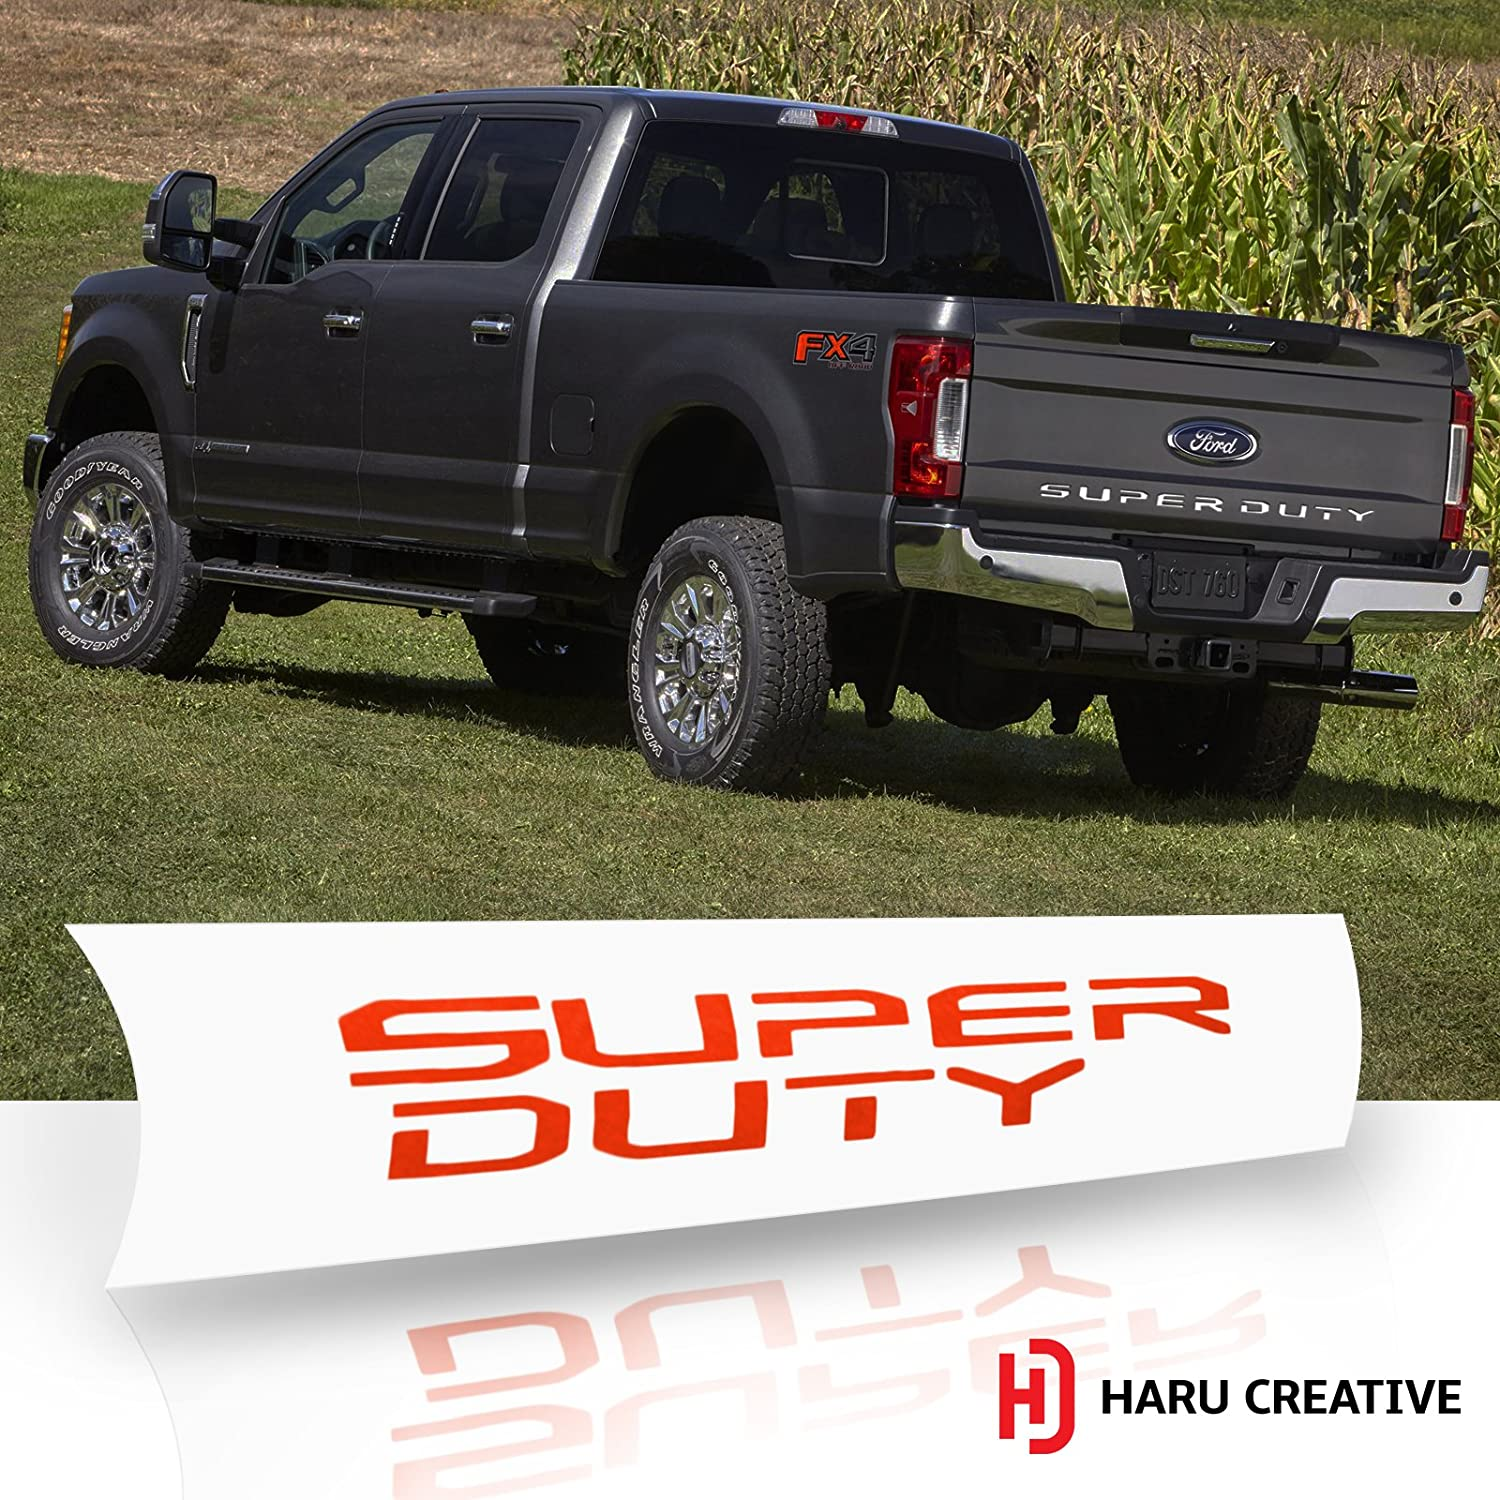 Rear Tailgate Trunk Letter Insert Overlay Vinyl Decal Sticker Compatible with and Fits Ford Super Duty F250 F350 F450 2017 2018 2019 Haru Creative Metallic Matte Chrome Blue